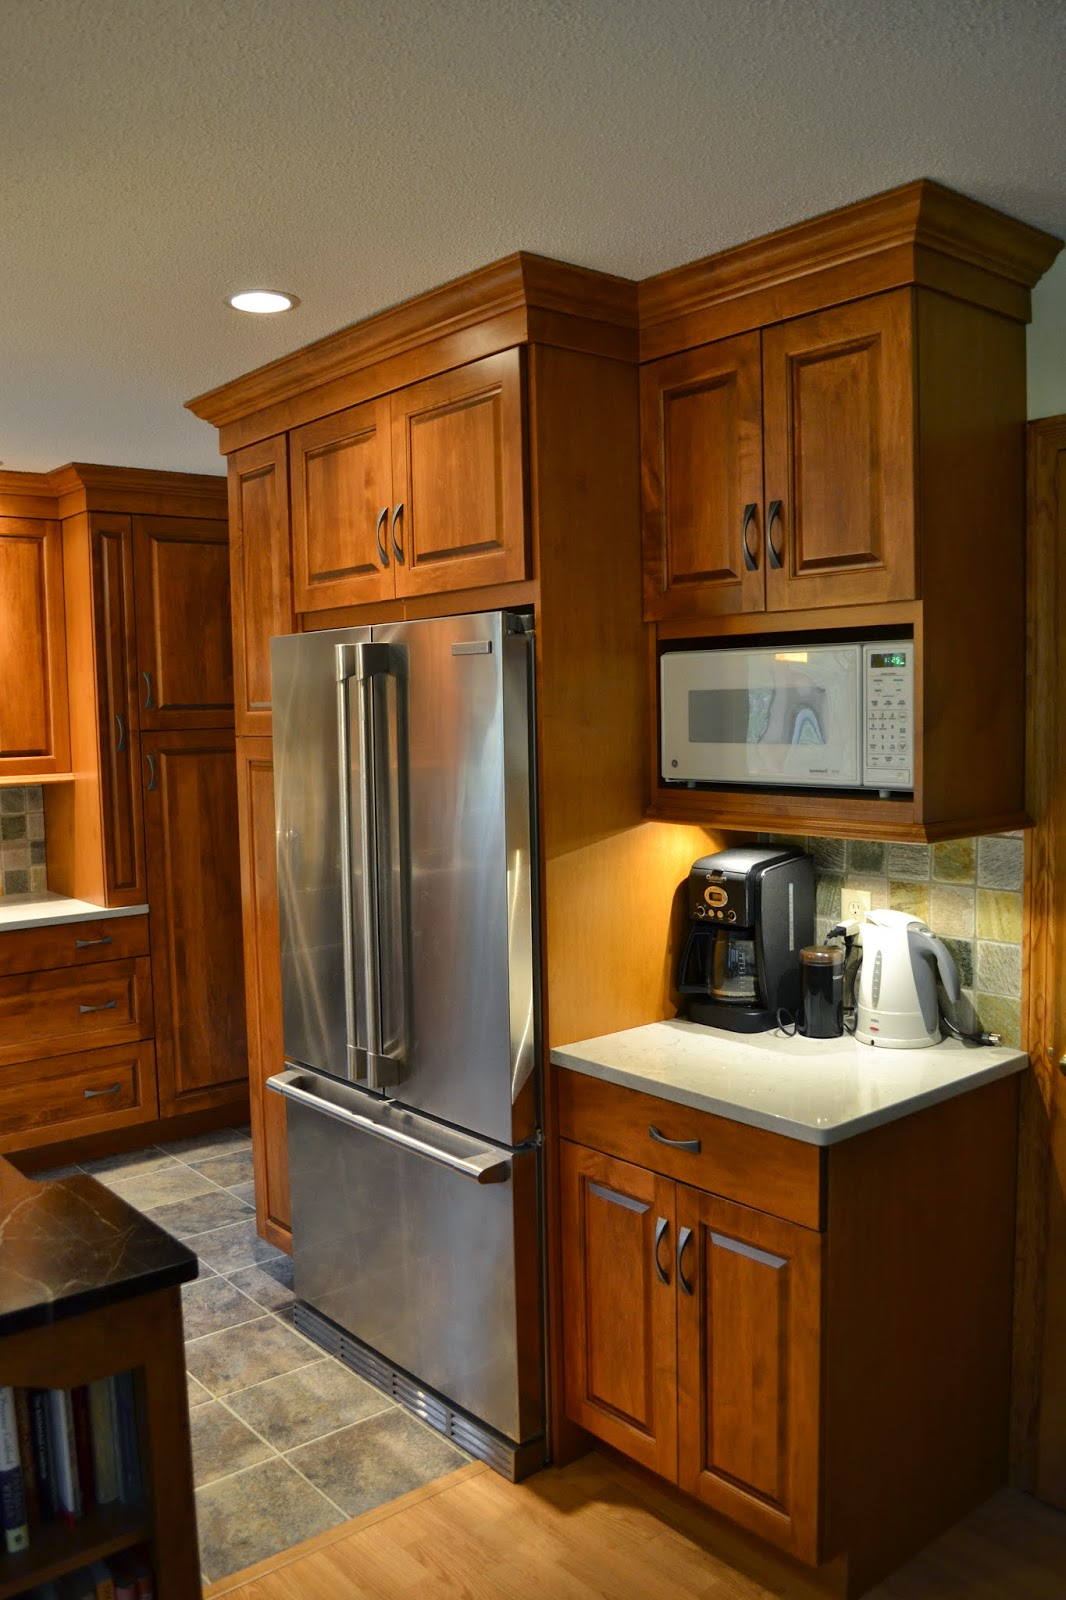 David Hecht Custom Kitchens: The Boss's Kitchen: Part 5 ...